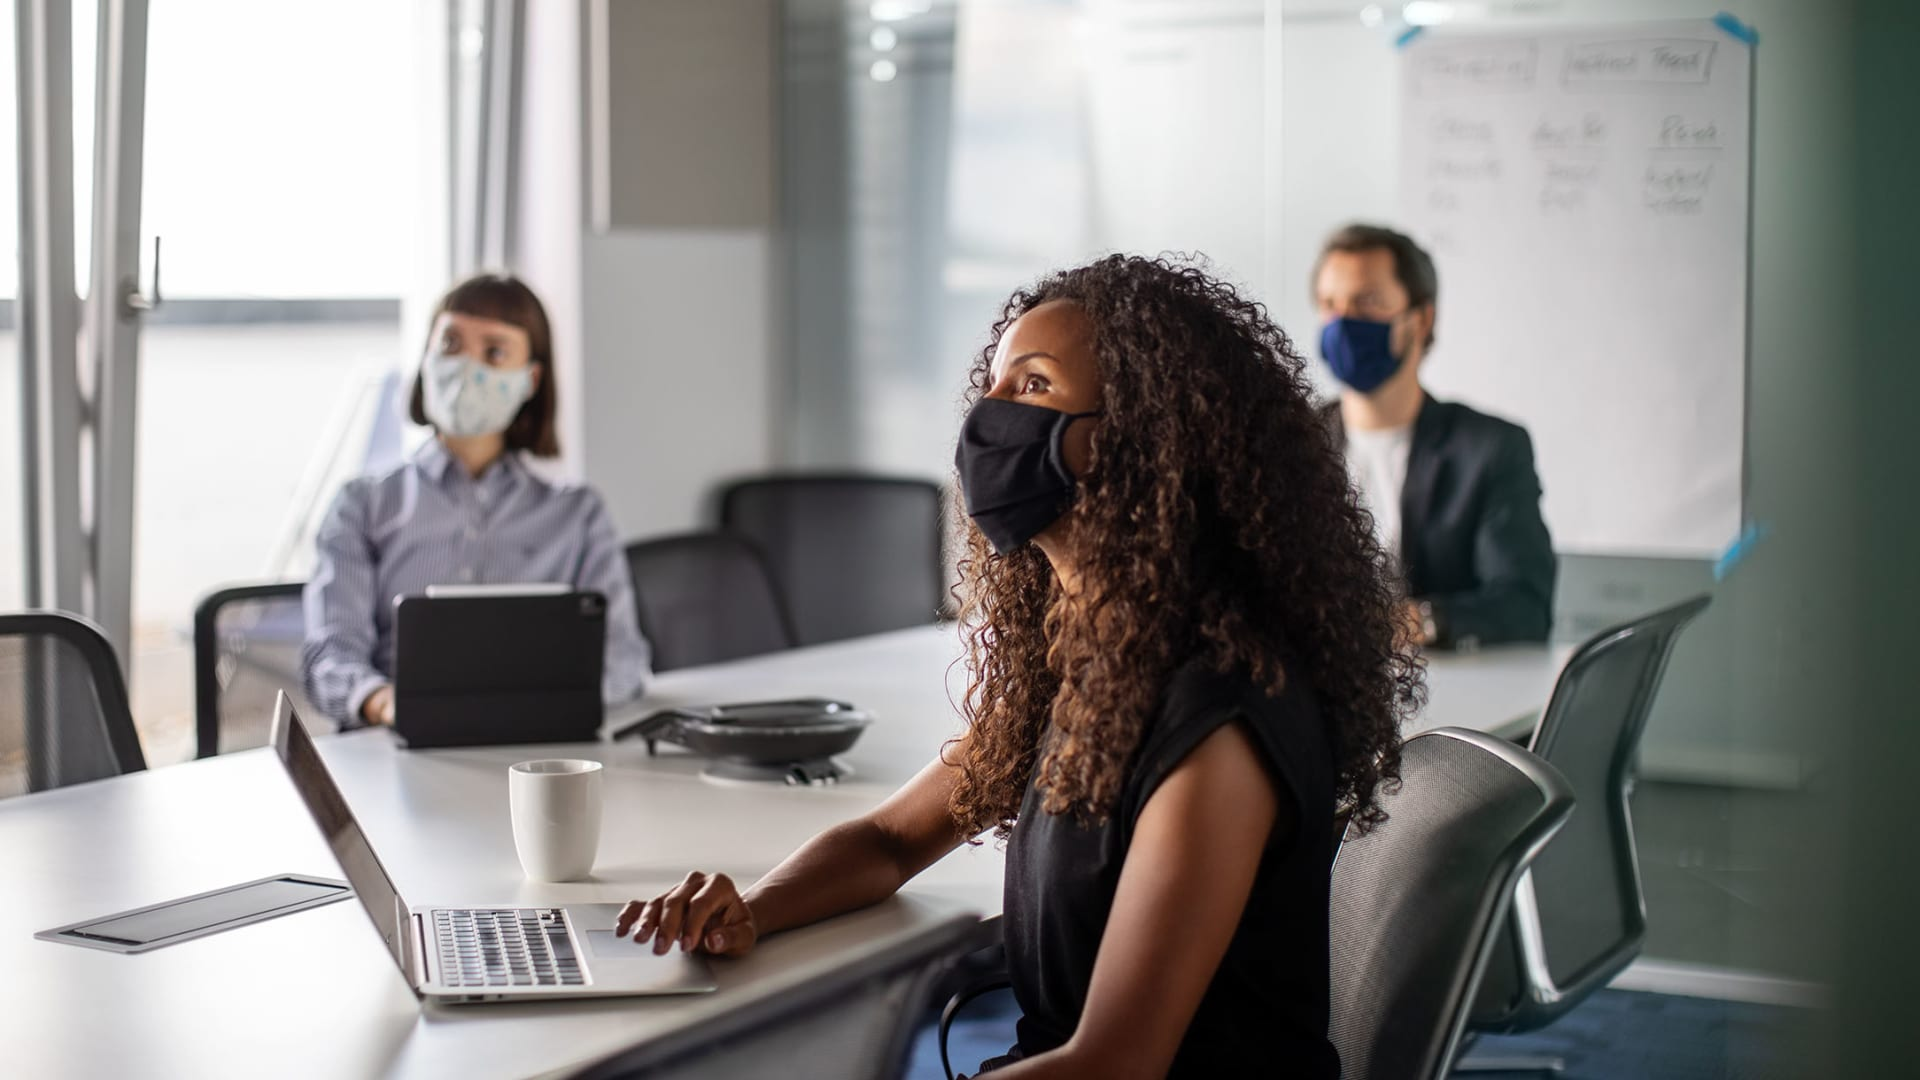 5 Job Perks You Should Provide in a Post-Pandemic Climate